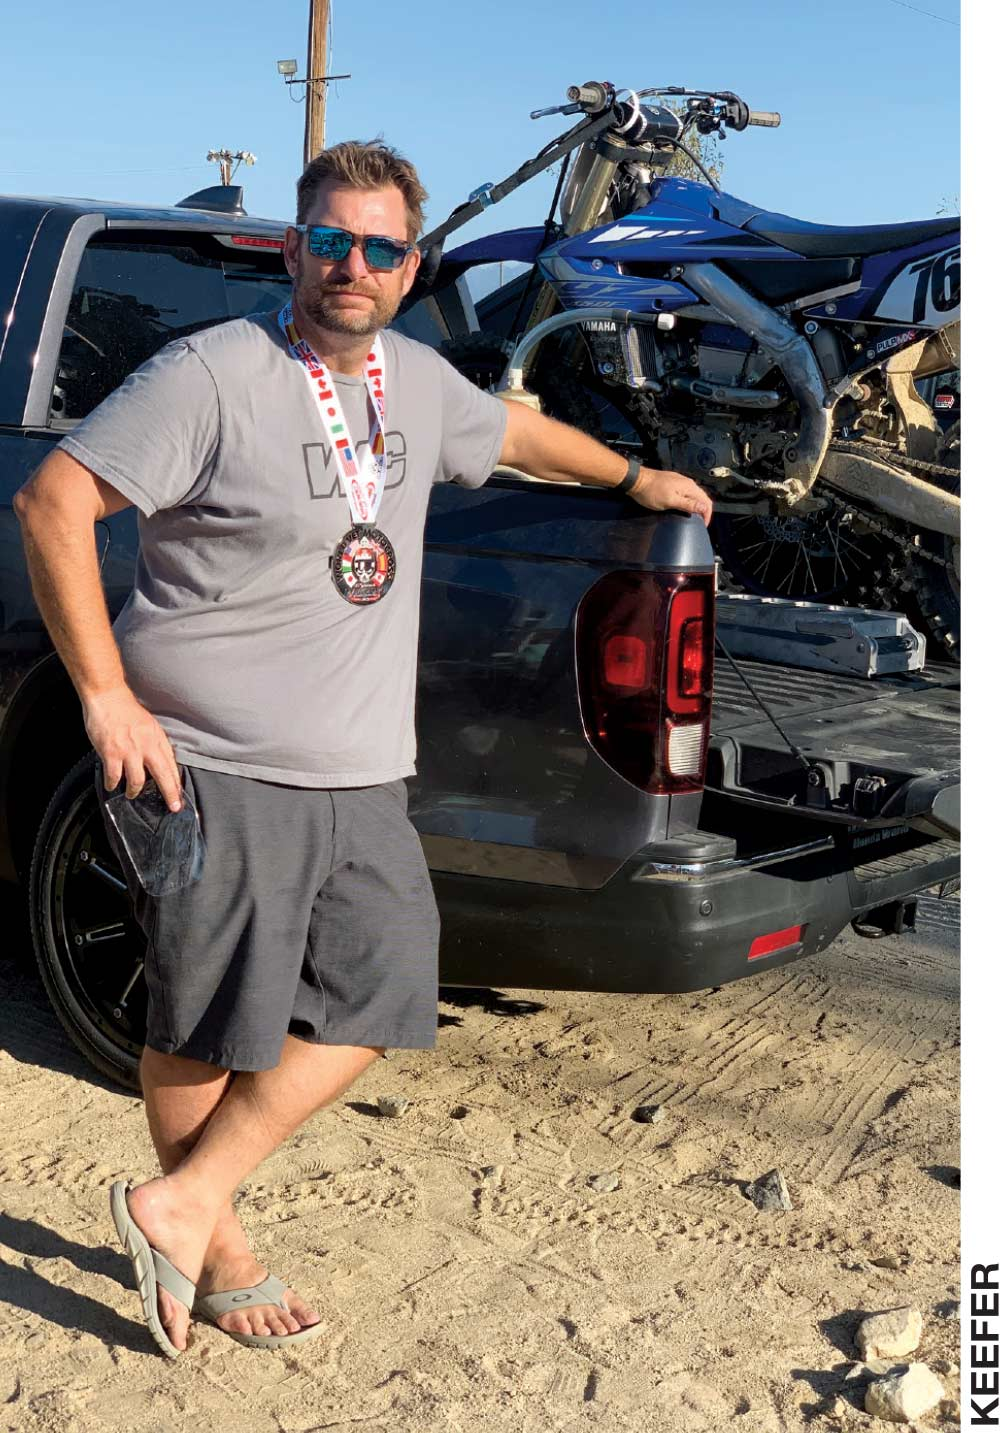 Matthes shows off his participation medal